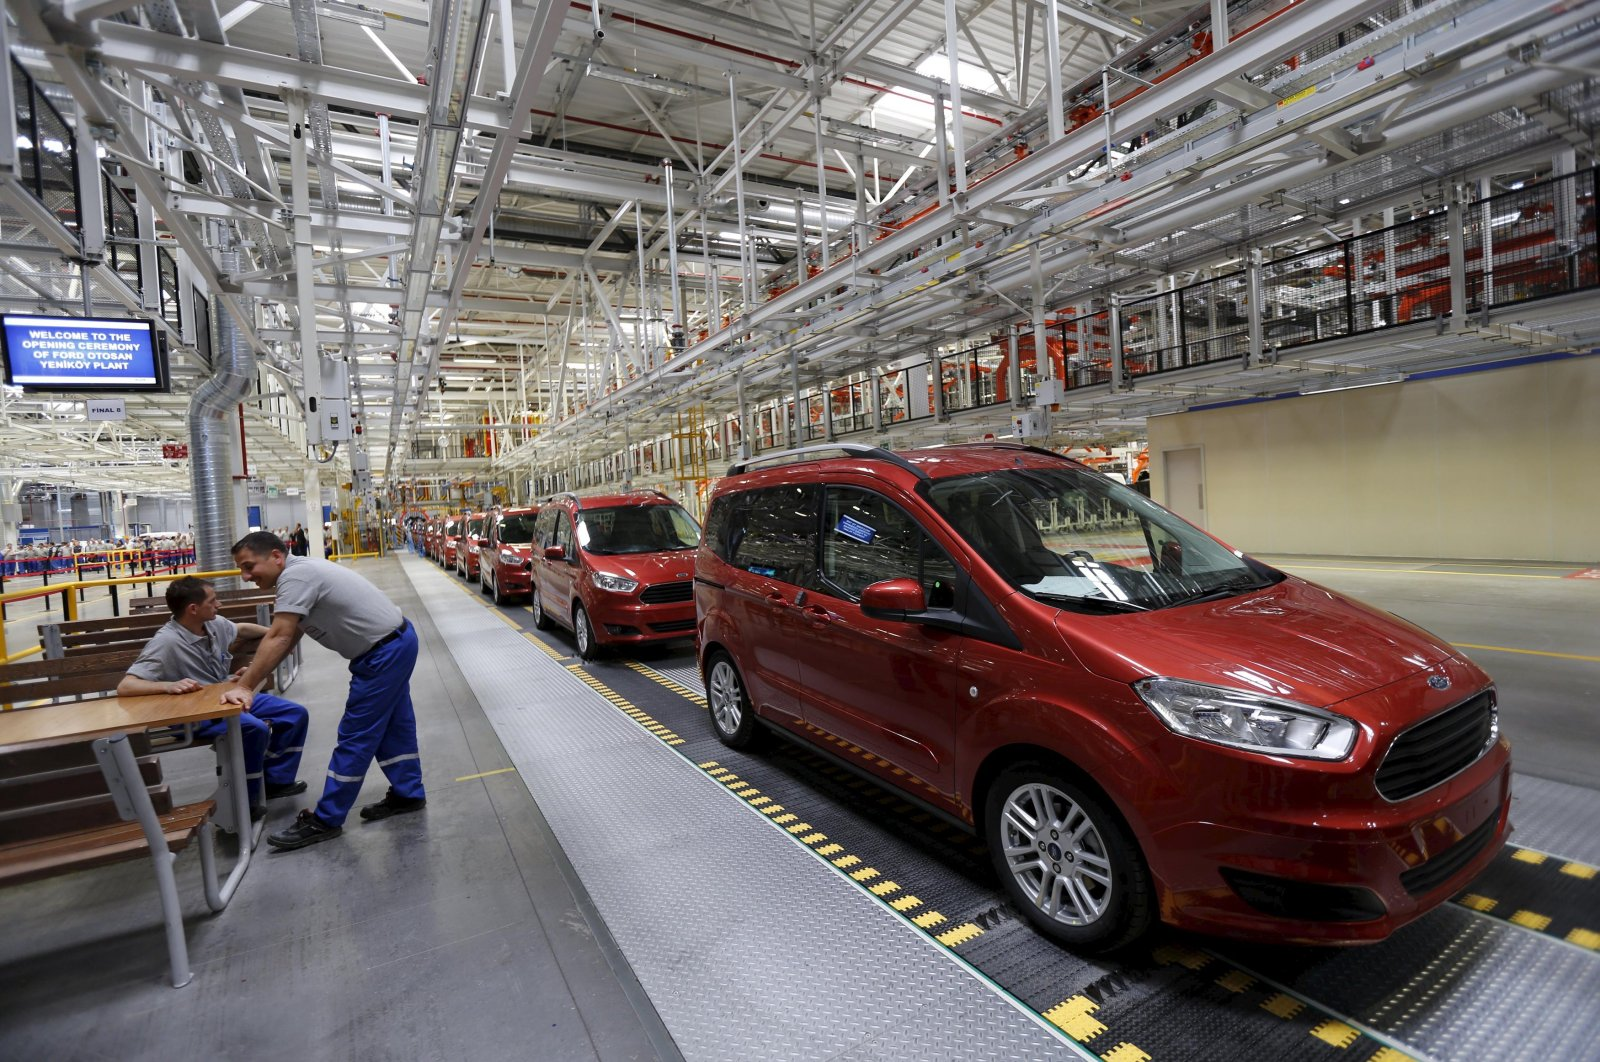 Ford Tourneo Courier light commercial vehicles at the Ford Otosan Yenikoy car plant in Kocaeli, Turkey, May 22, 2014. (Reuters Photo)